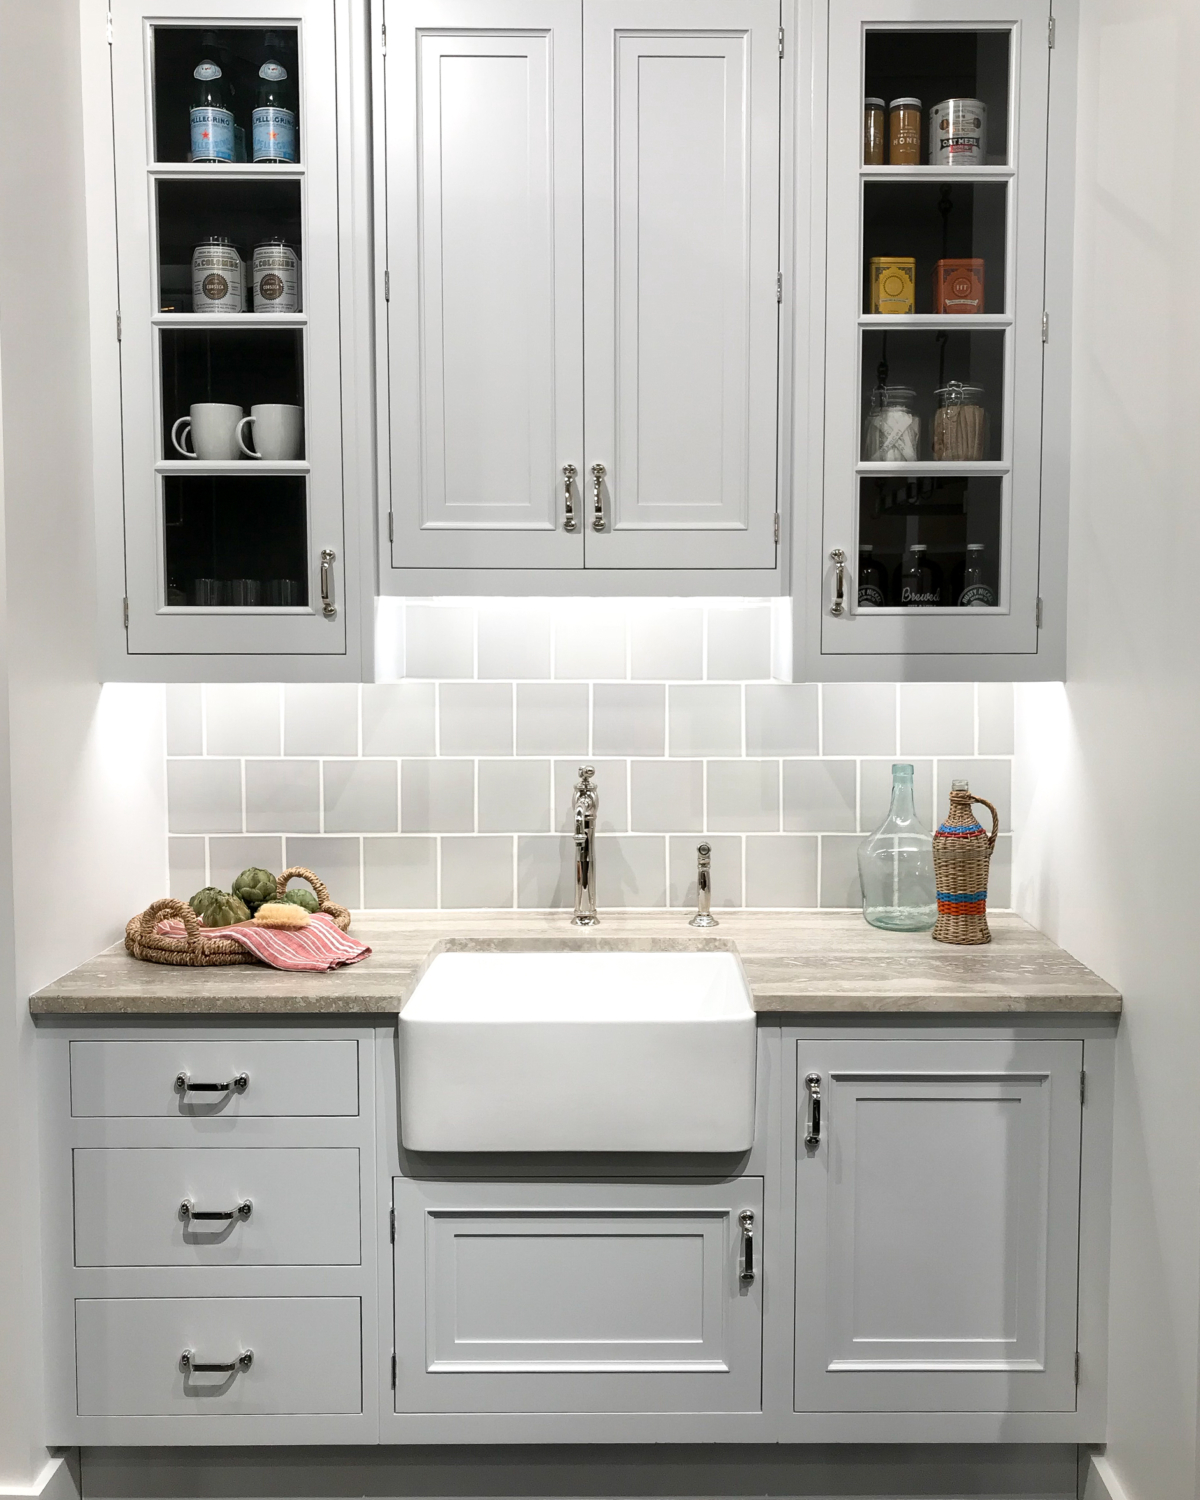 Pantry with grey cabinets, farmhouse sink, polished chrome hardware